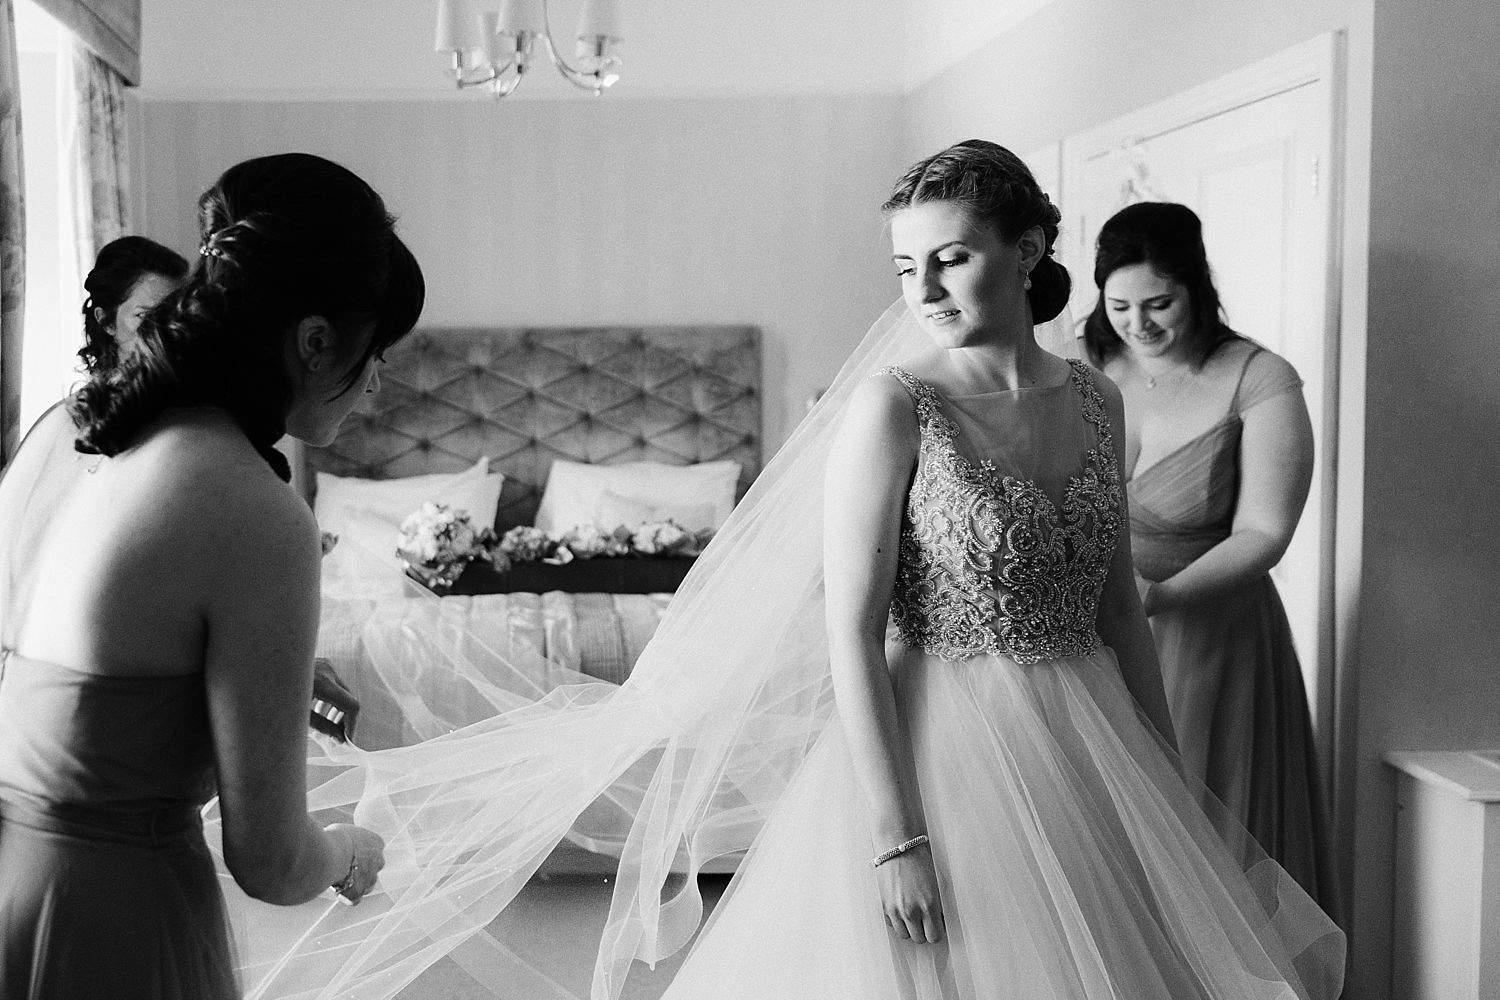 Bride and bridesmaids straightening veil at Belsfield Hotel wedding